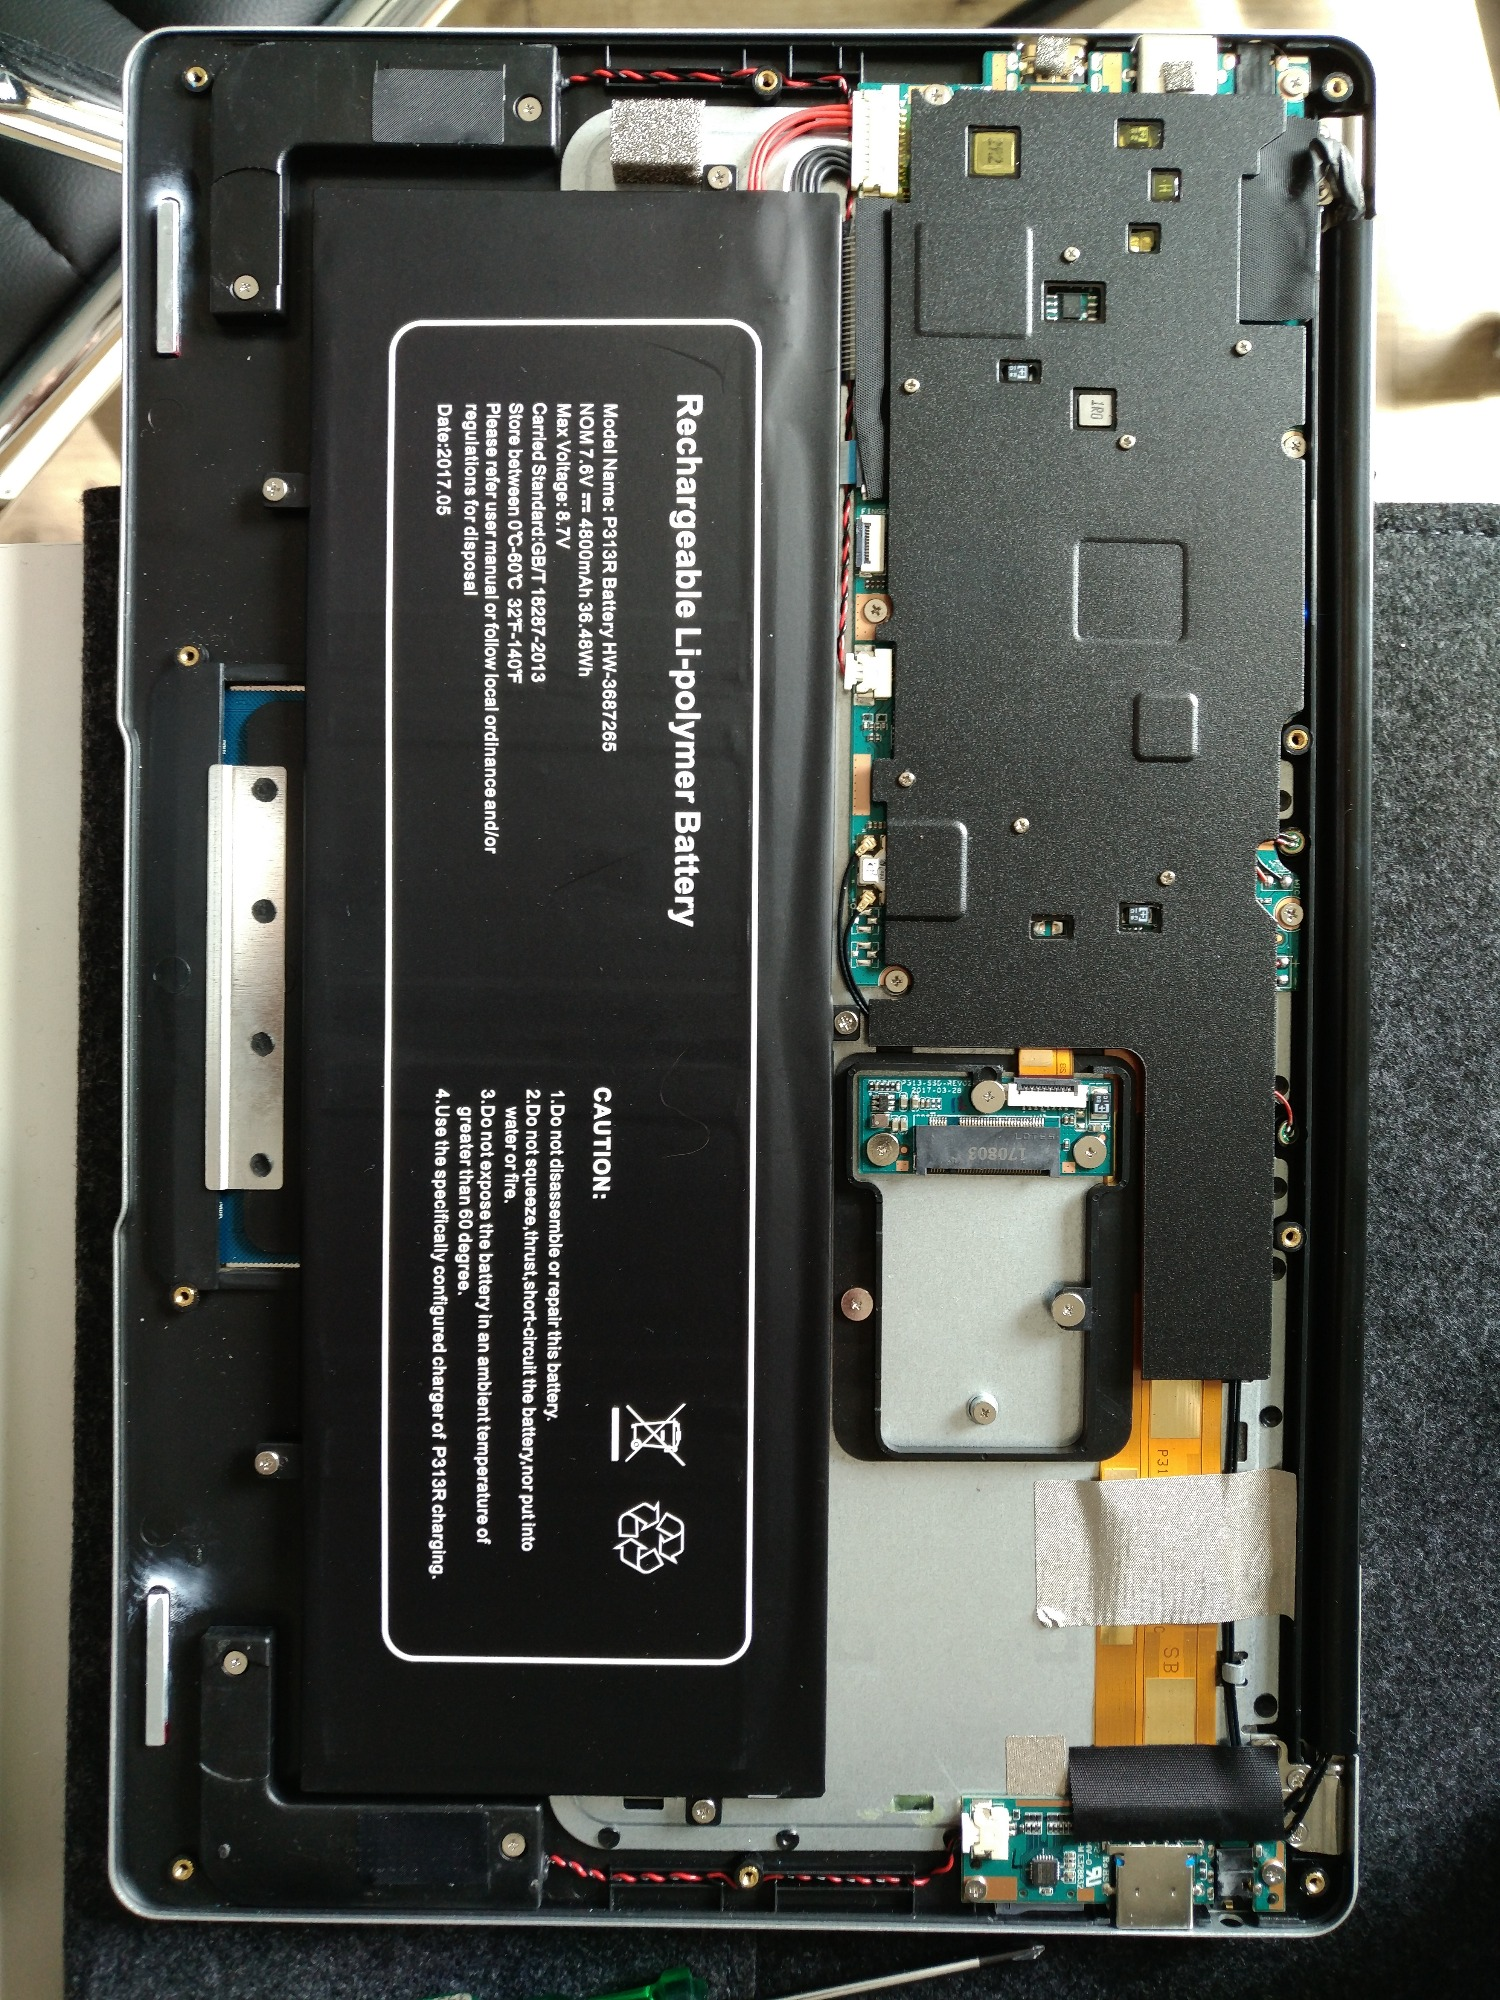 IMG_20170716_163229 EZBOOK 3 m.2 SSD - ChinaMobileMag Forum